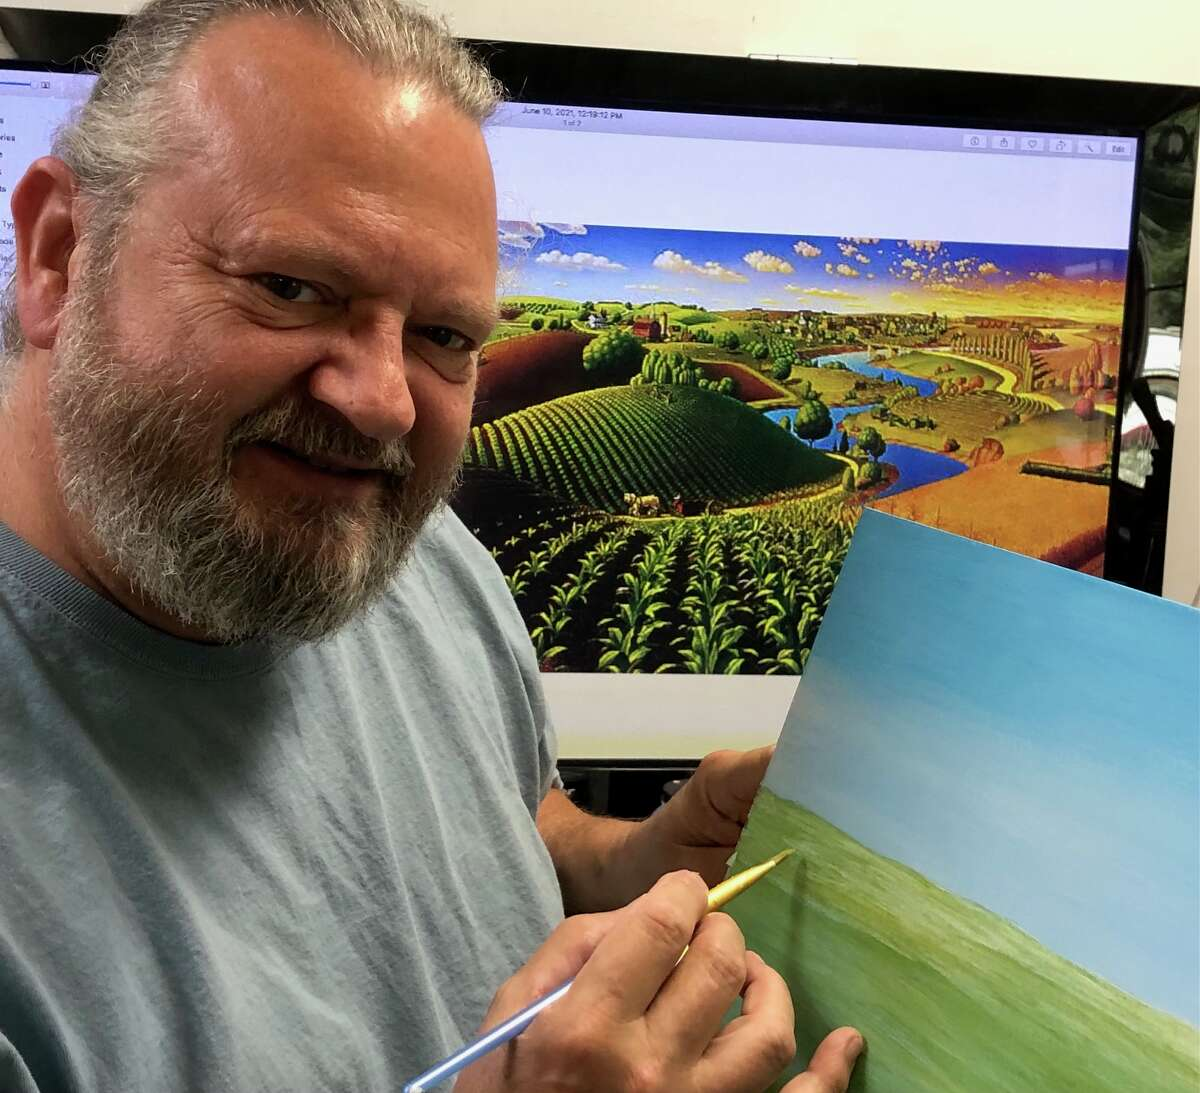 Local artist William Hattendorf offers a peek at the corner of the mural to be hung on the exterior wall of the Marilla Township Hall. The mural shown in the background is by Grant Wood and hints of what is to come. (Courtesy photo)